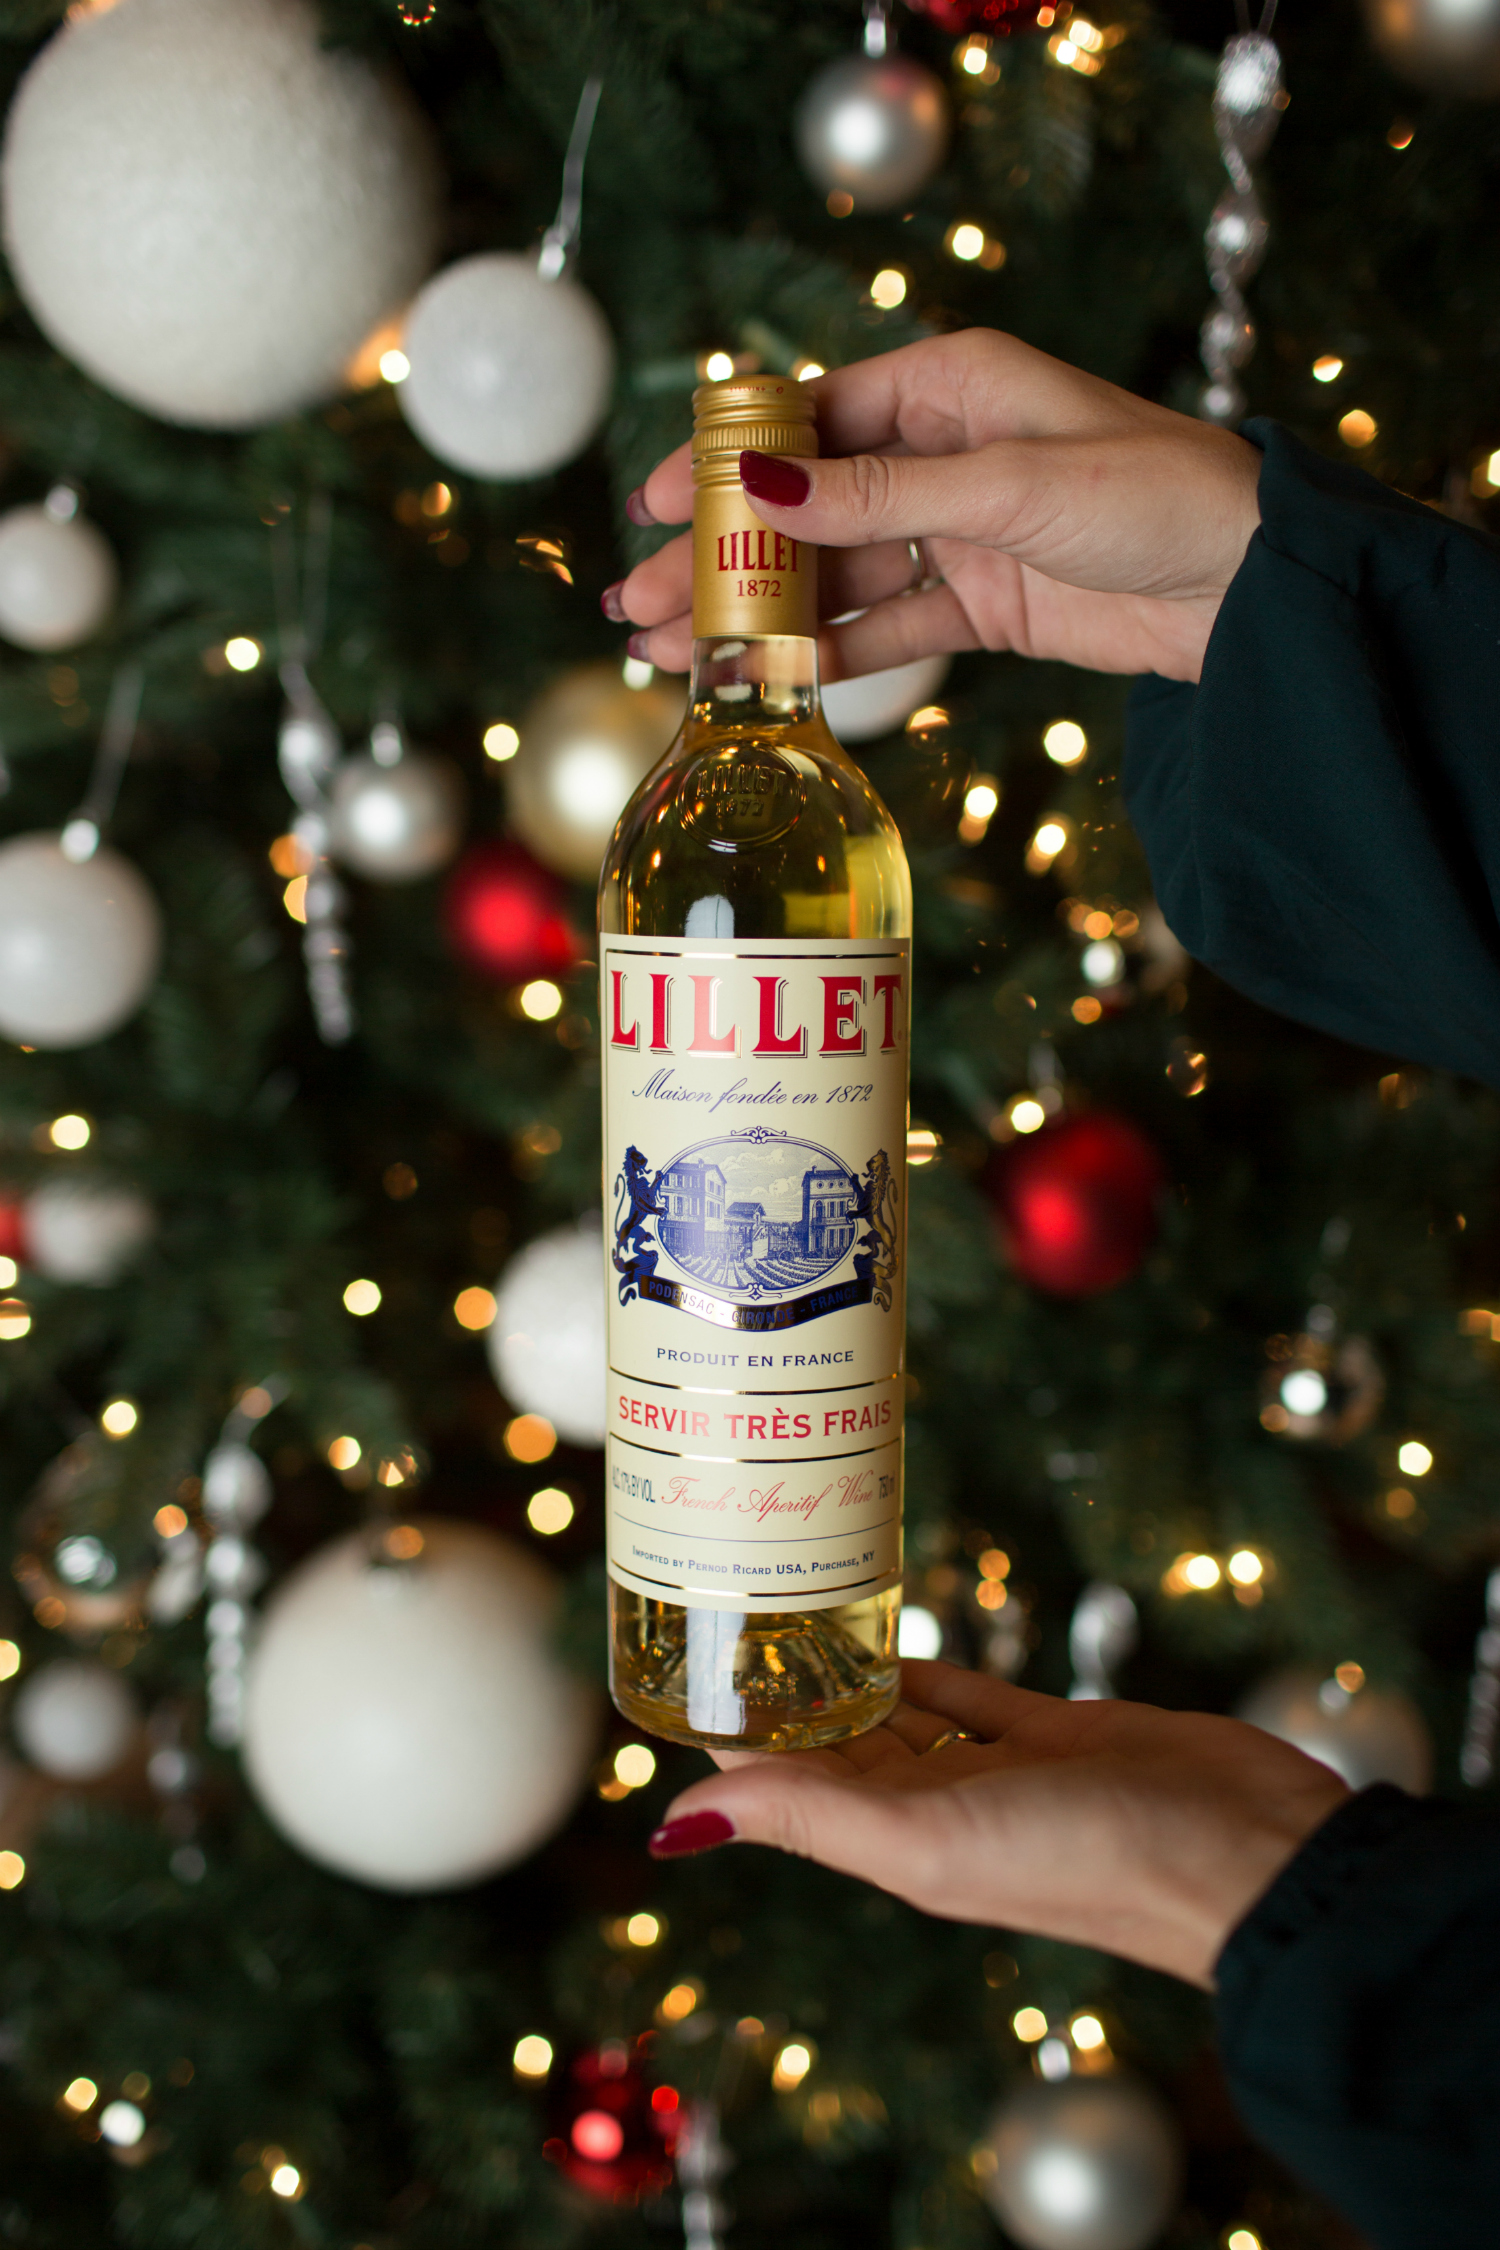 One Stylish Party Lillet Holiday 2017-2